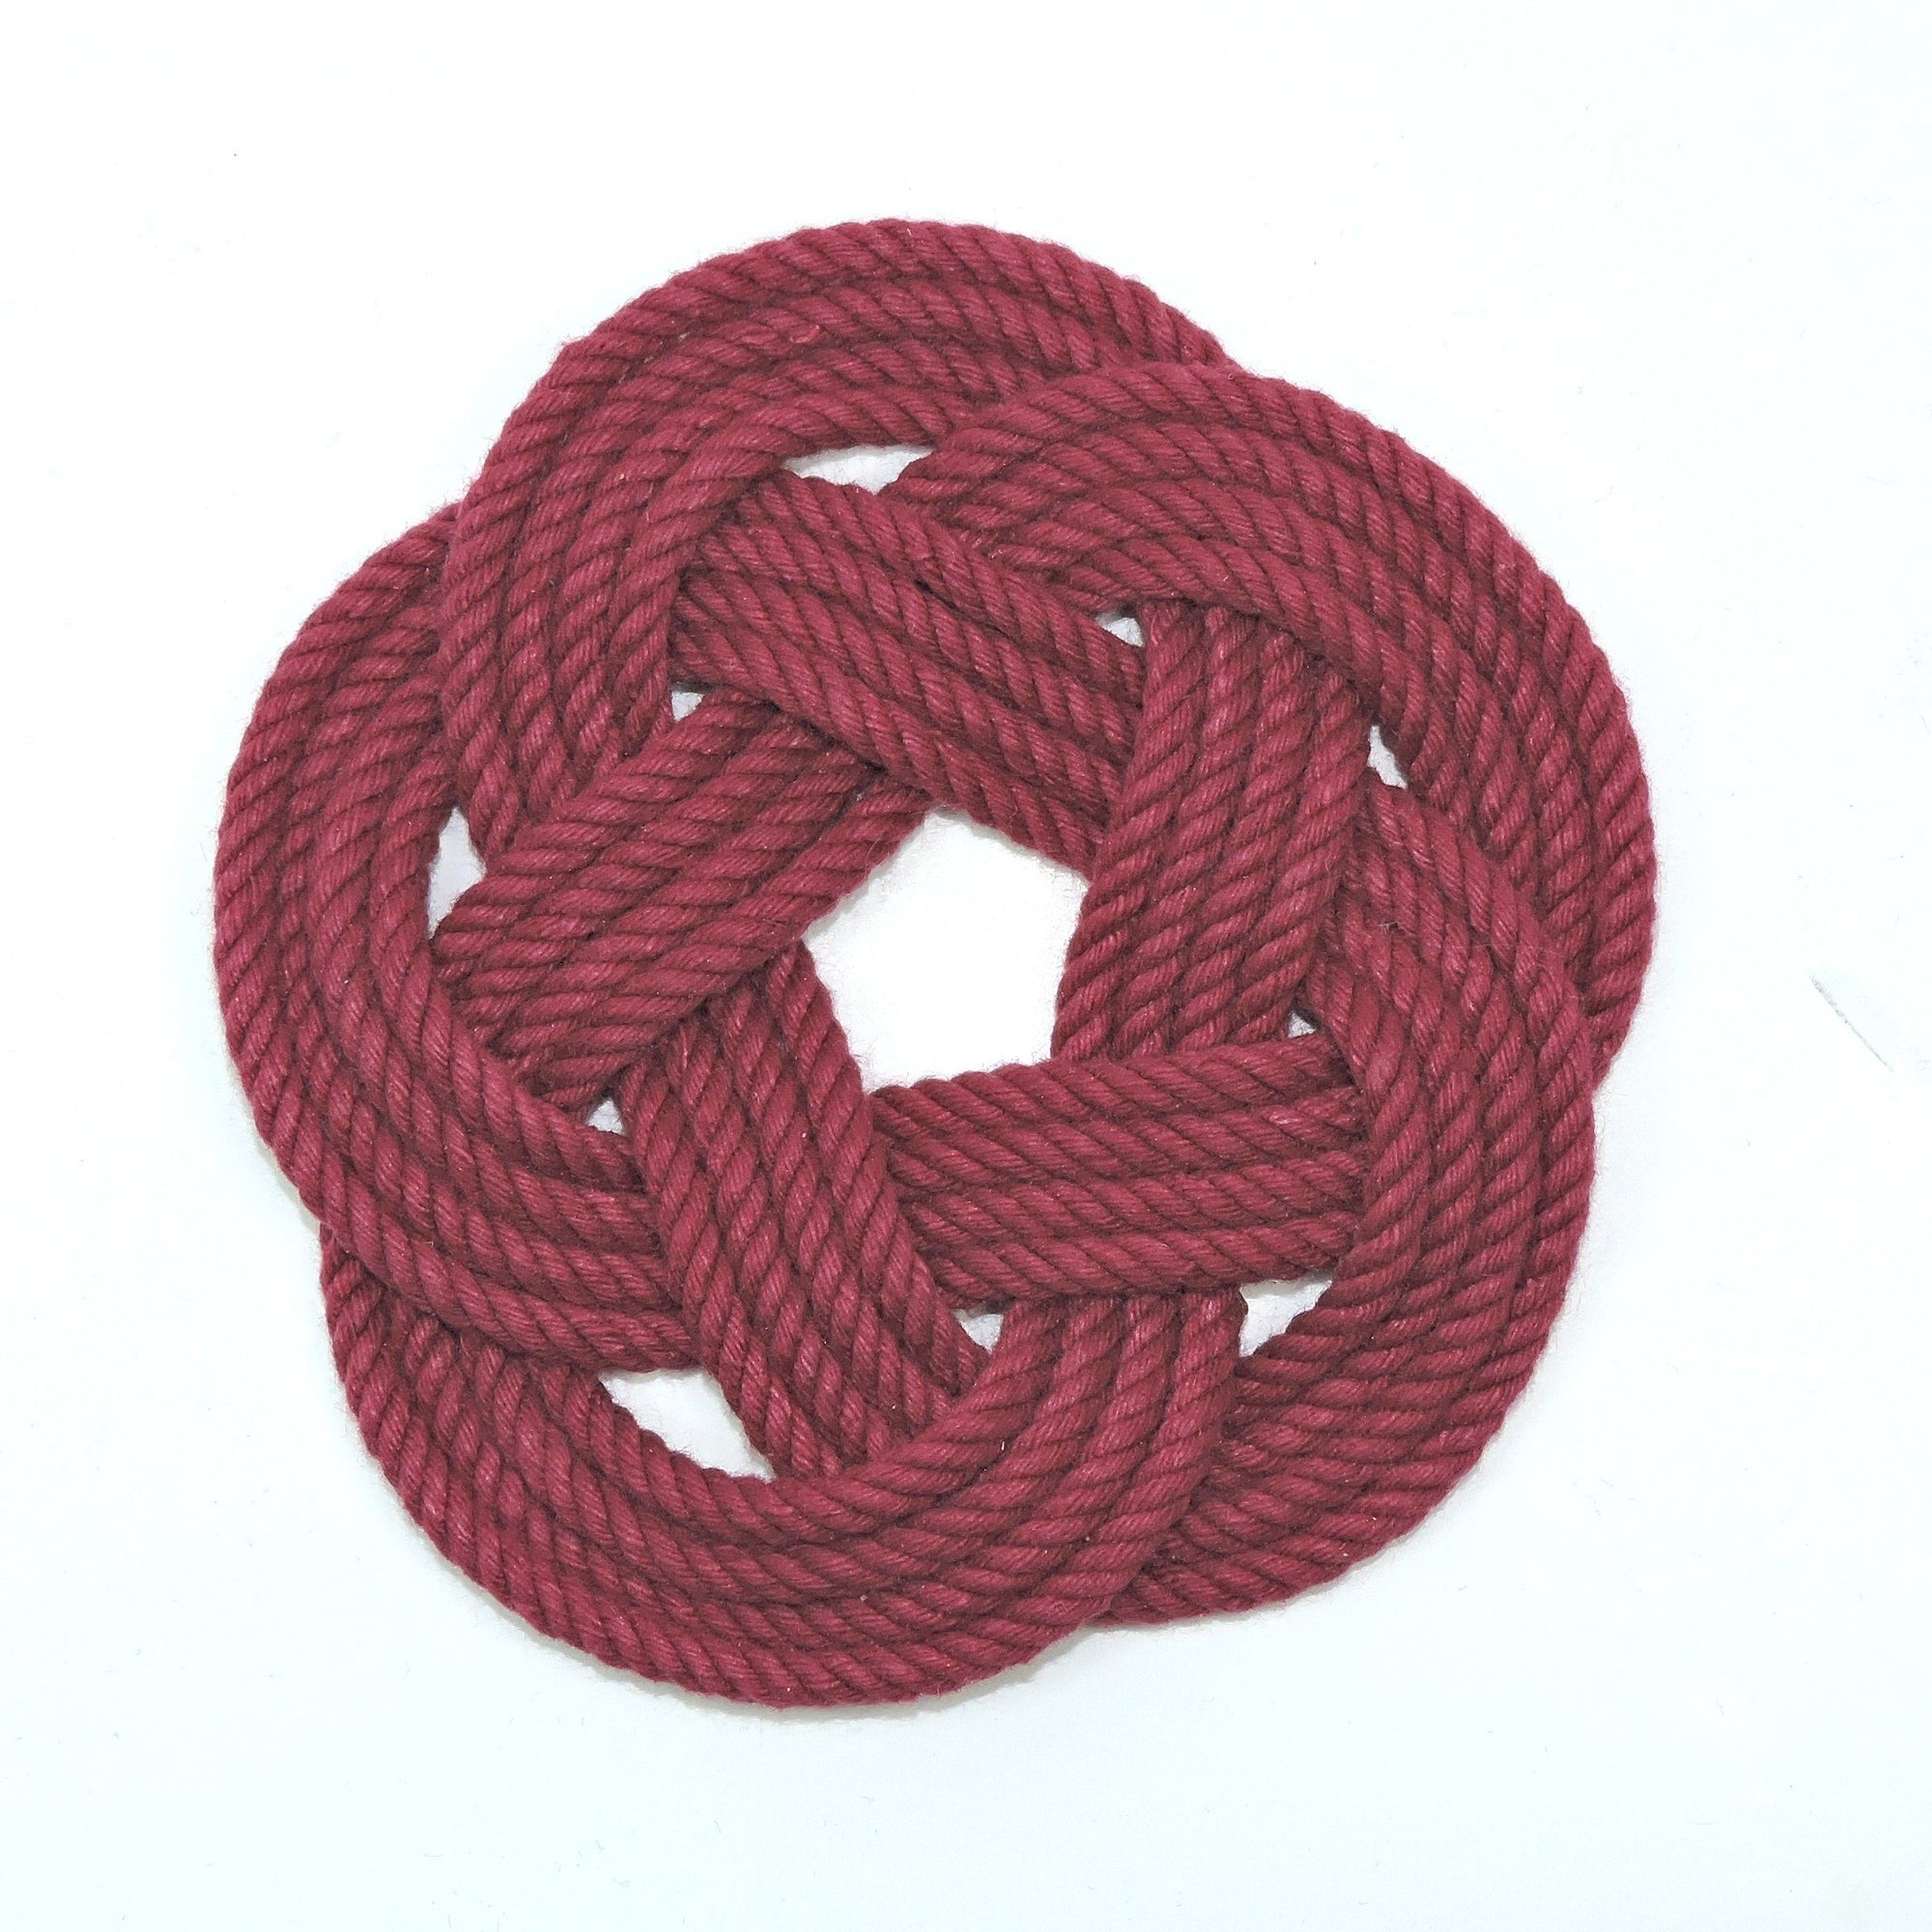 Nautical Knot Sailor Knot Coasters, woven in Burgundy , Set of 4 handmade at Mystic Knotwork